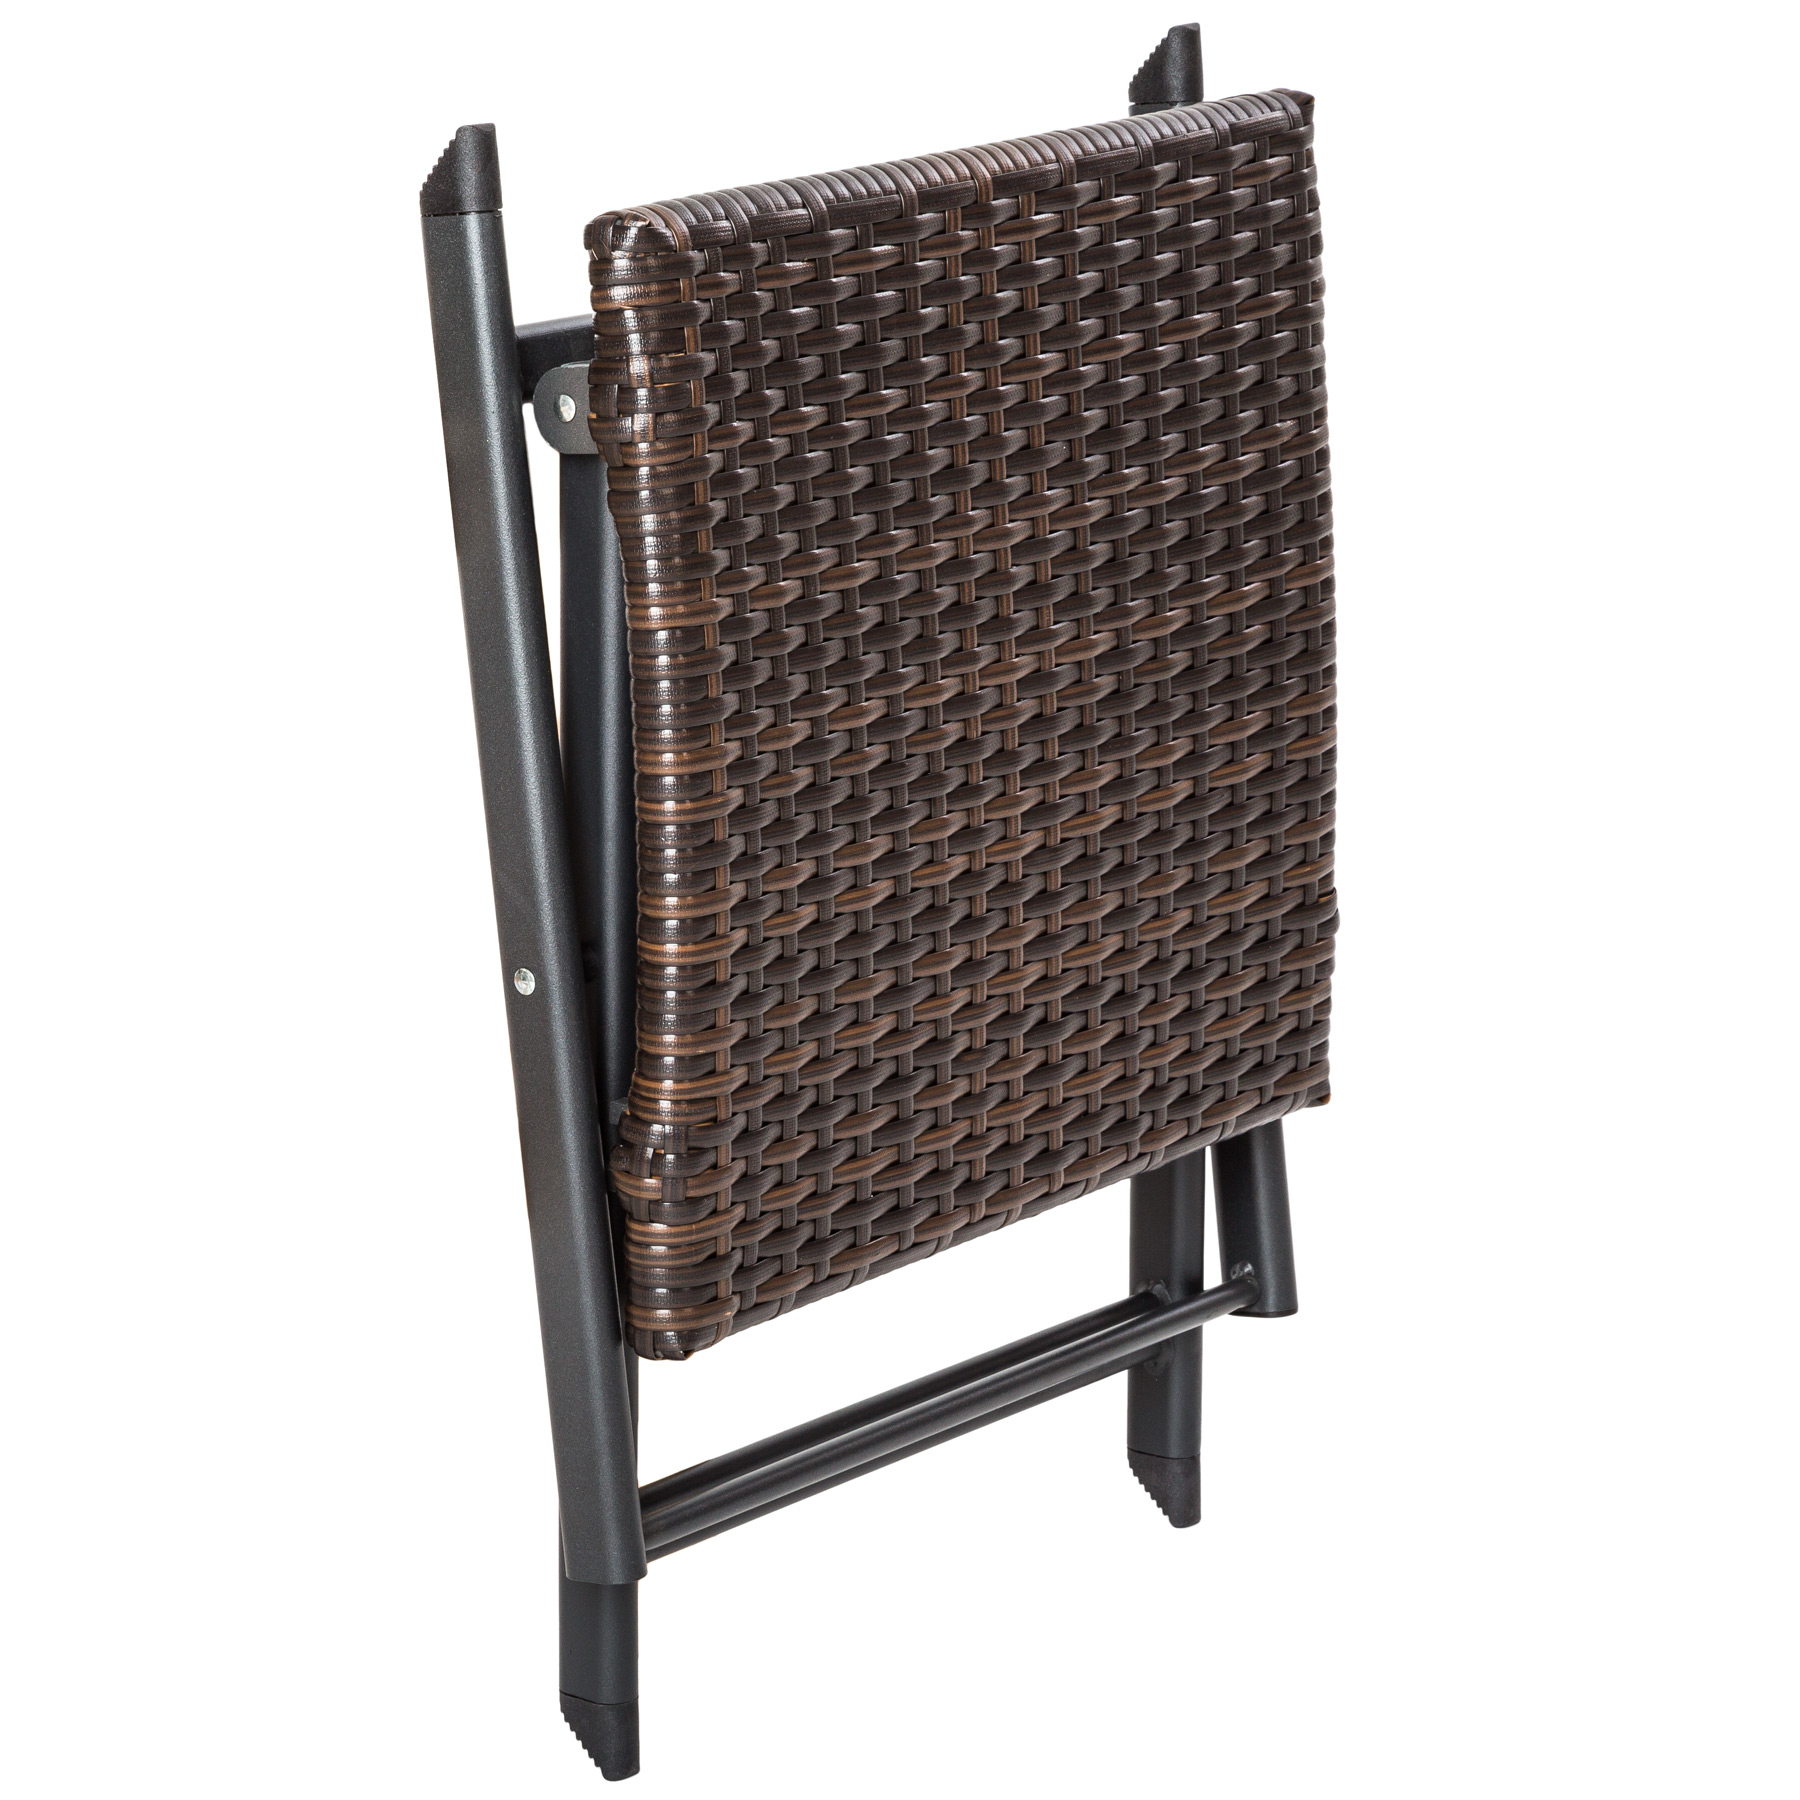 aluminium rattan klapphocker sitzhocker beistelltisch hocker stuhl rattanhocker. Black Bedroom Furniture Sets. Home Design Ideas